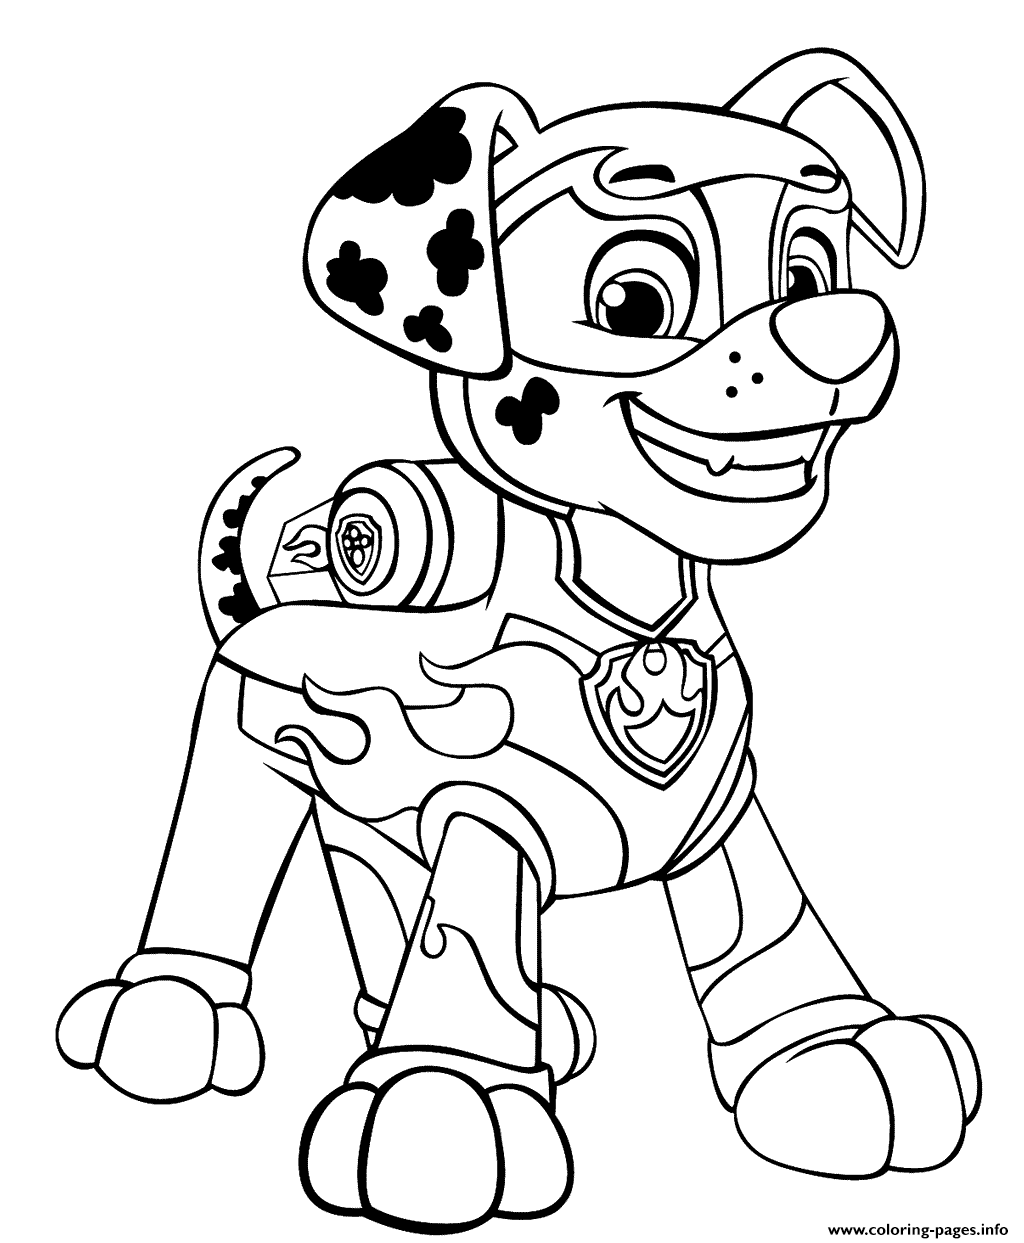 - PAW Patrol Mighty Pups Marshal For Boys Coloring Pages Printable